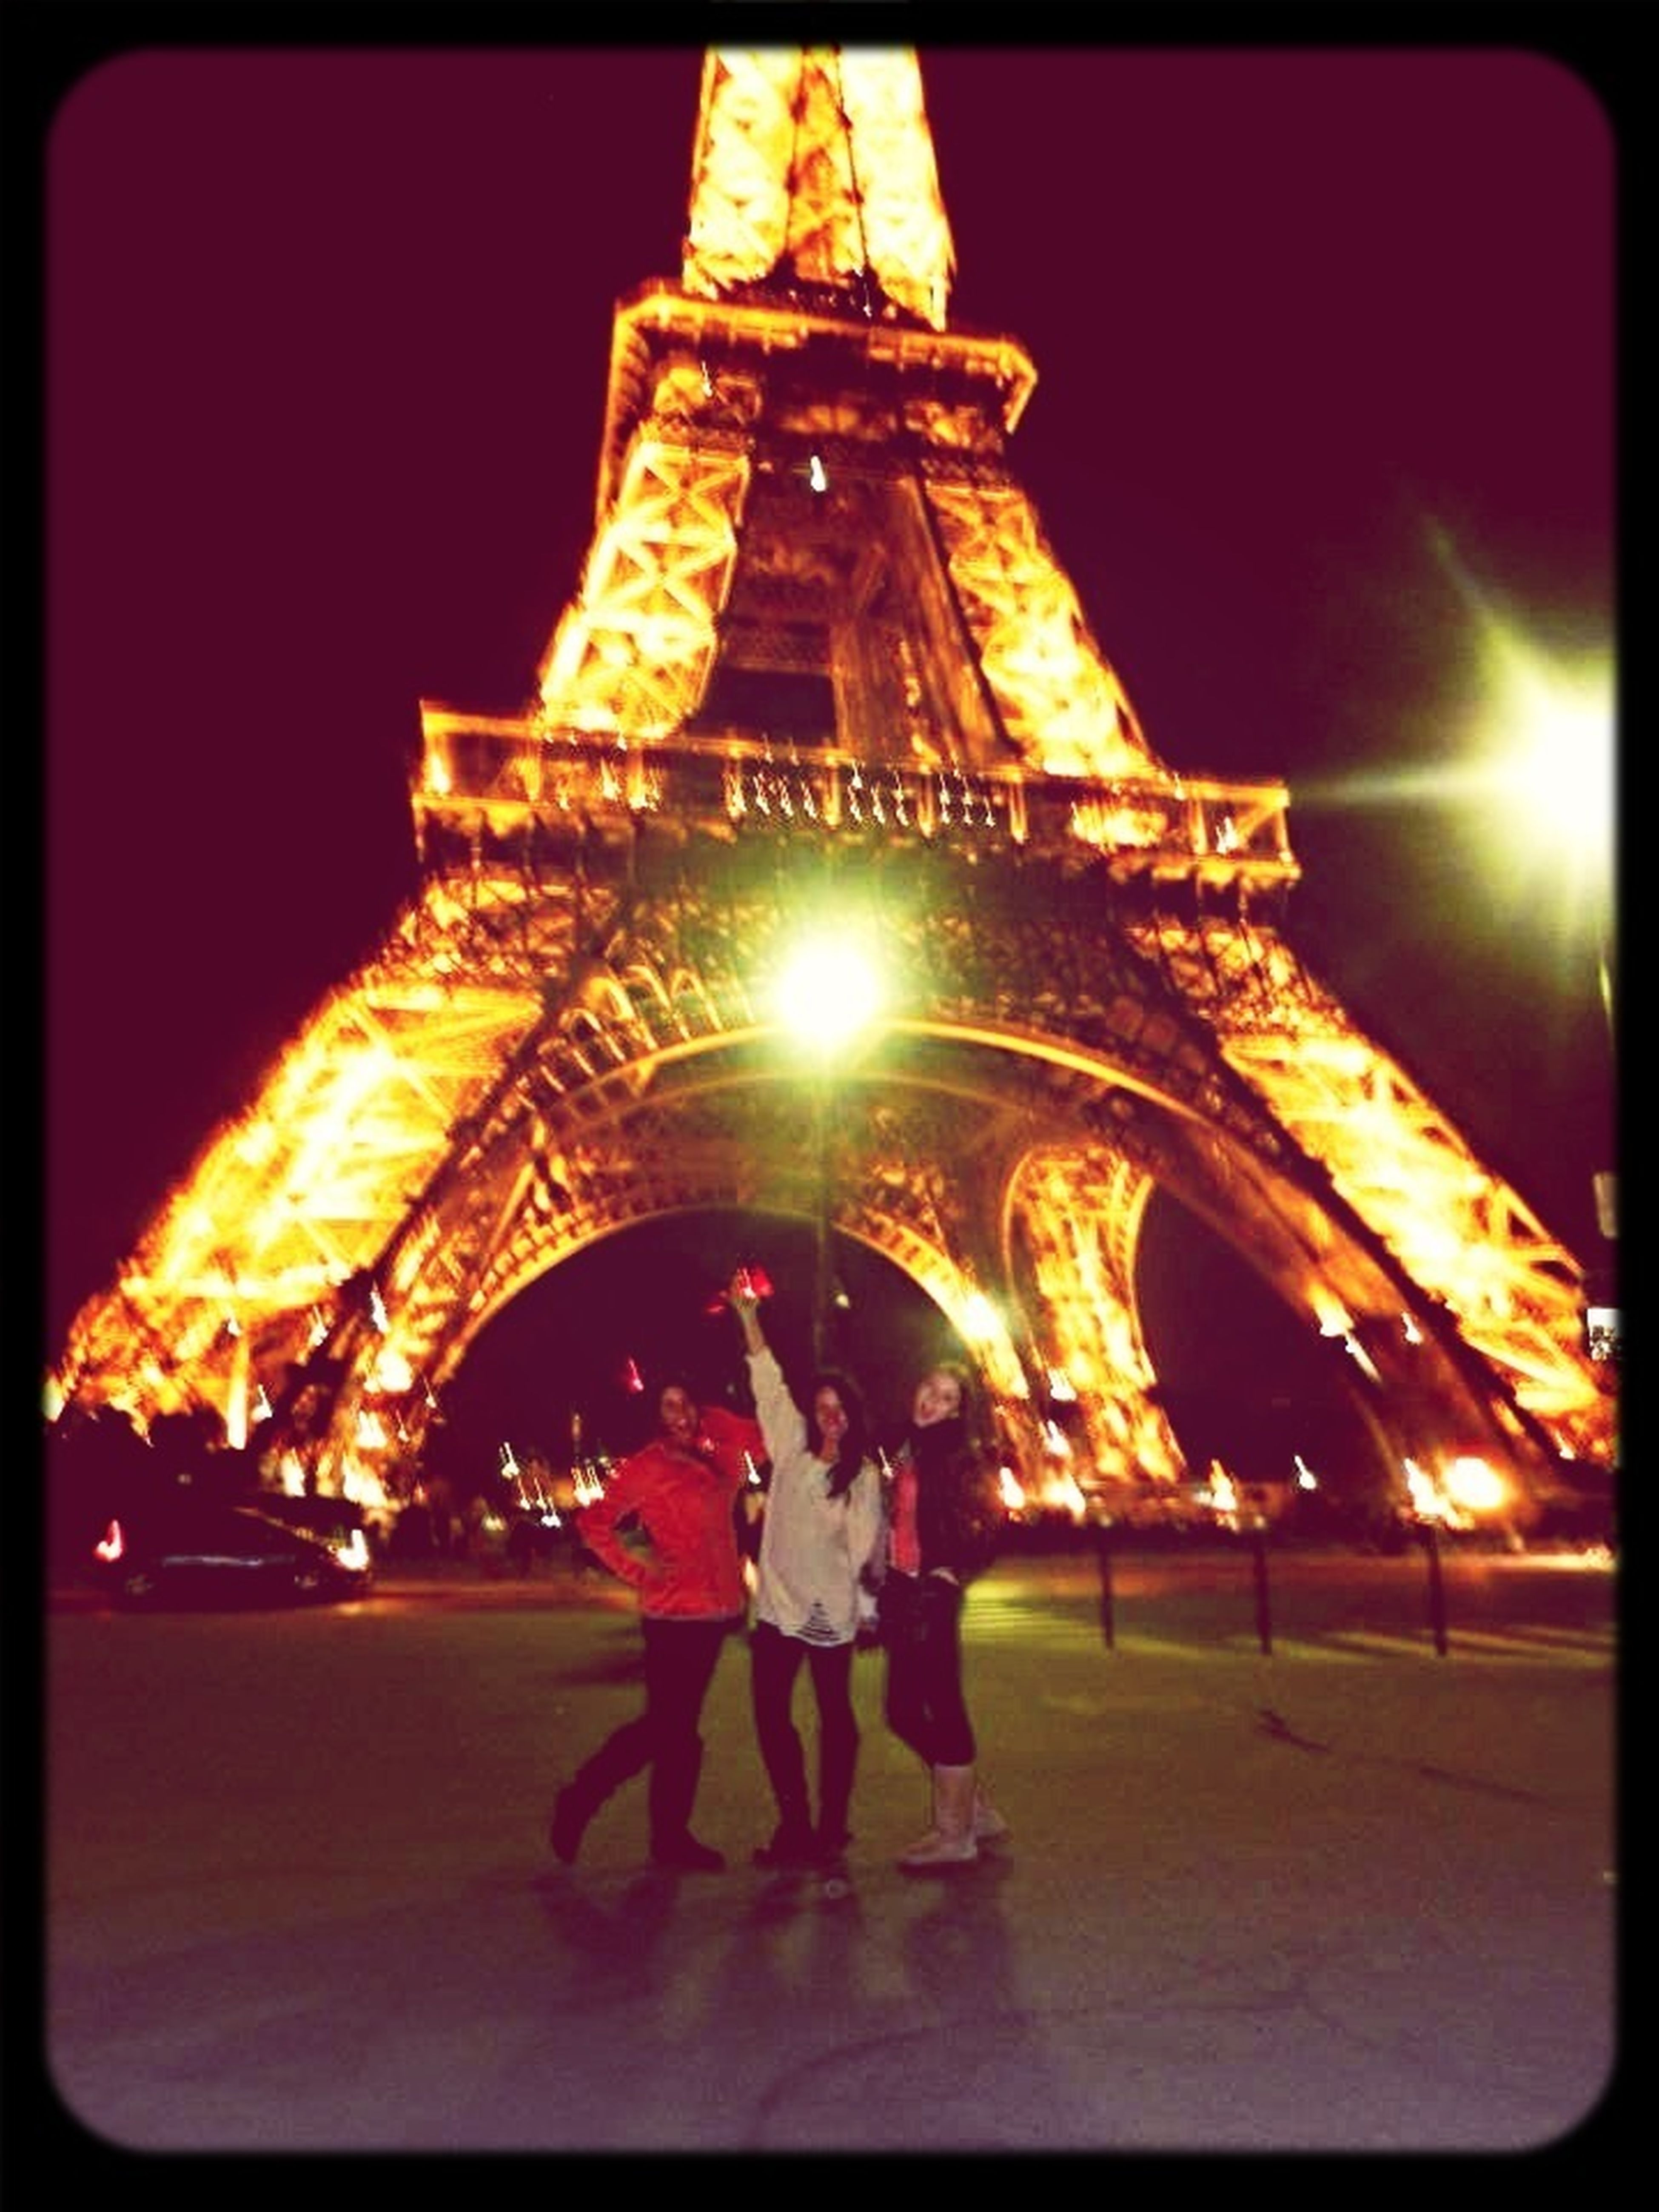 Throwing it back to the Eiffel Tower for my first picture!